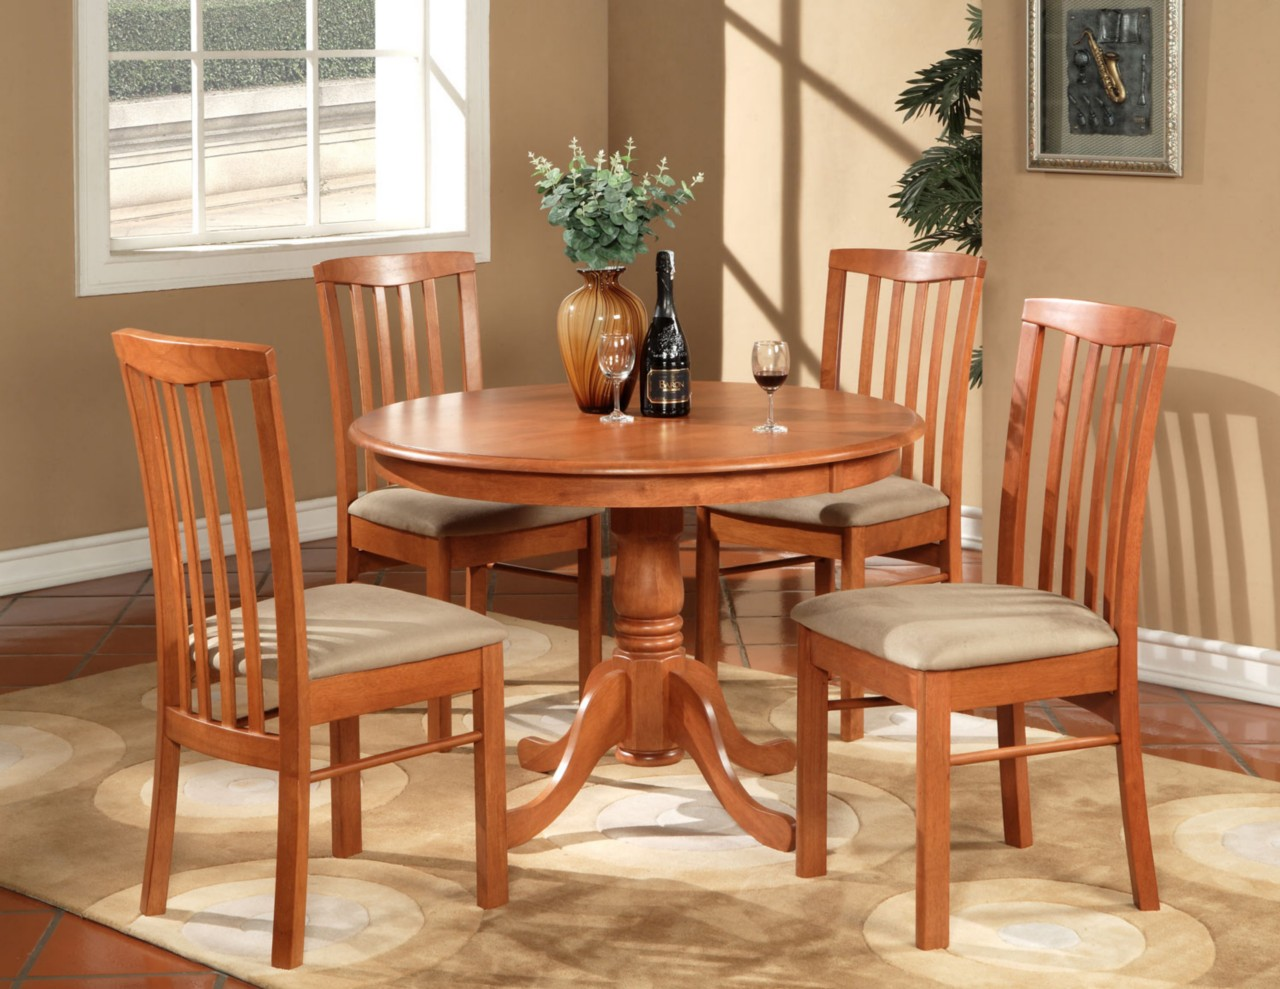 Kitchen table and chairs sets photo - 1